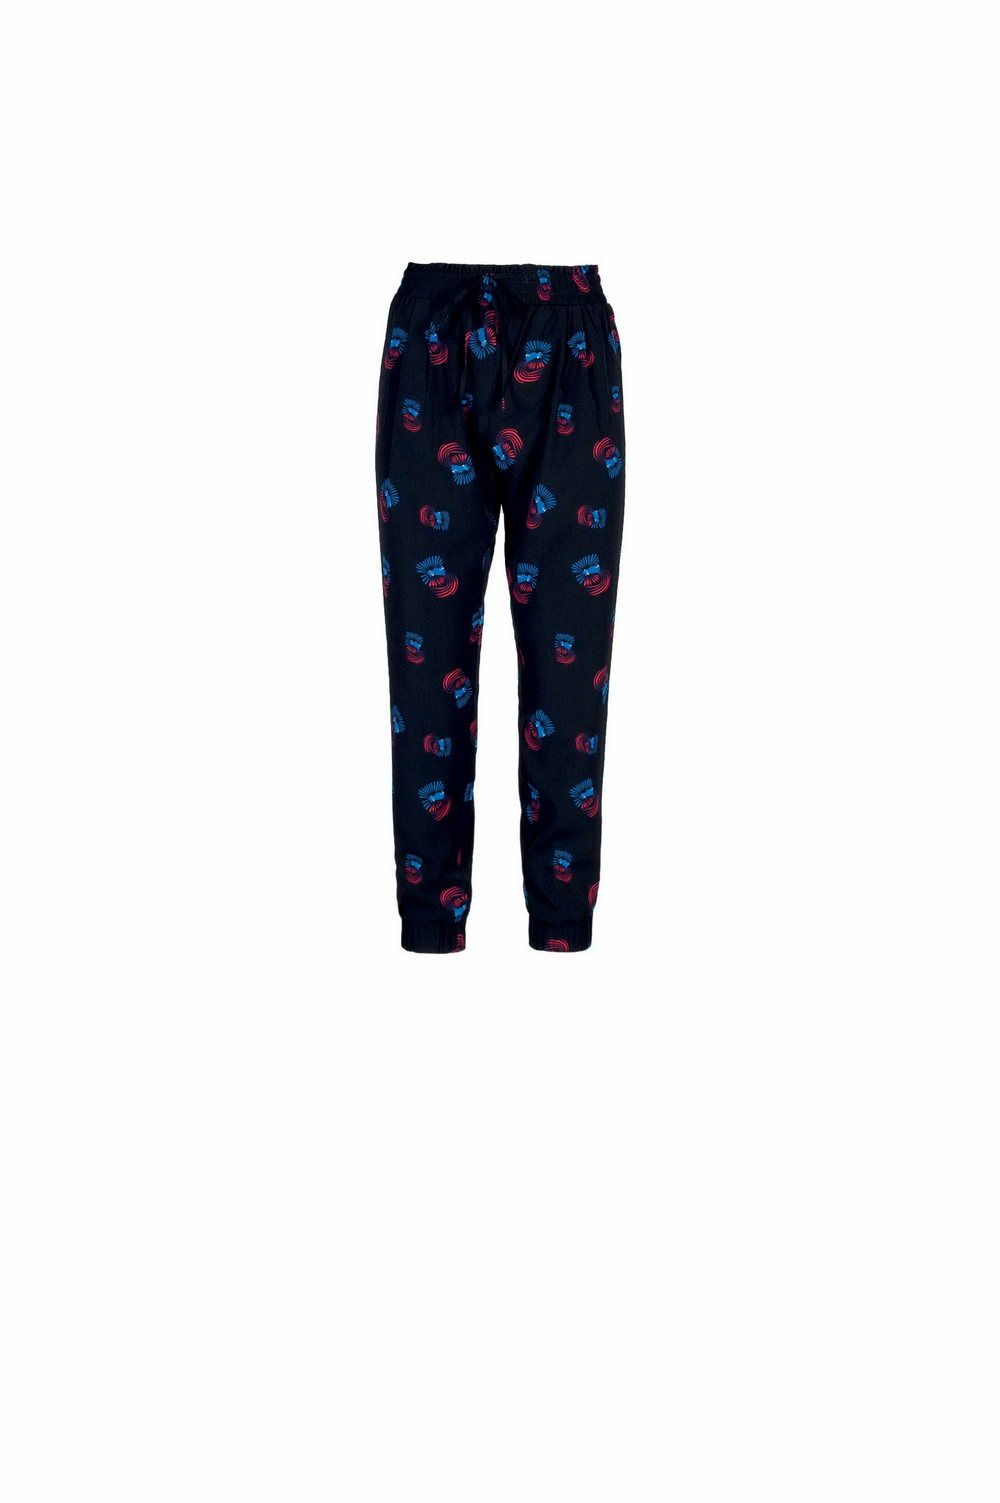 AnonymeDesigners_A249FP106 - Trousers - PVP 82,20€_resize